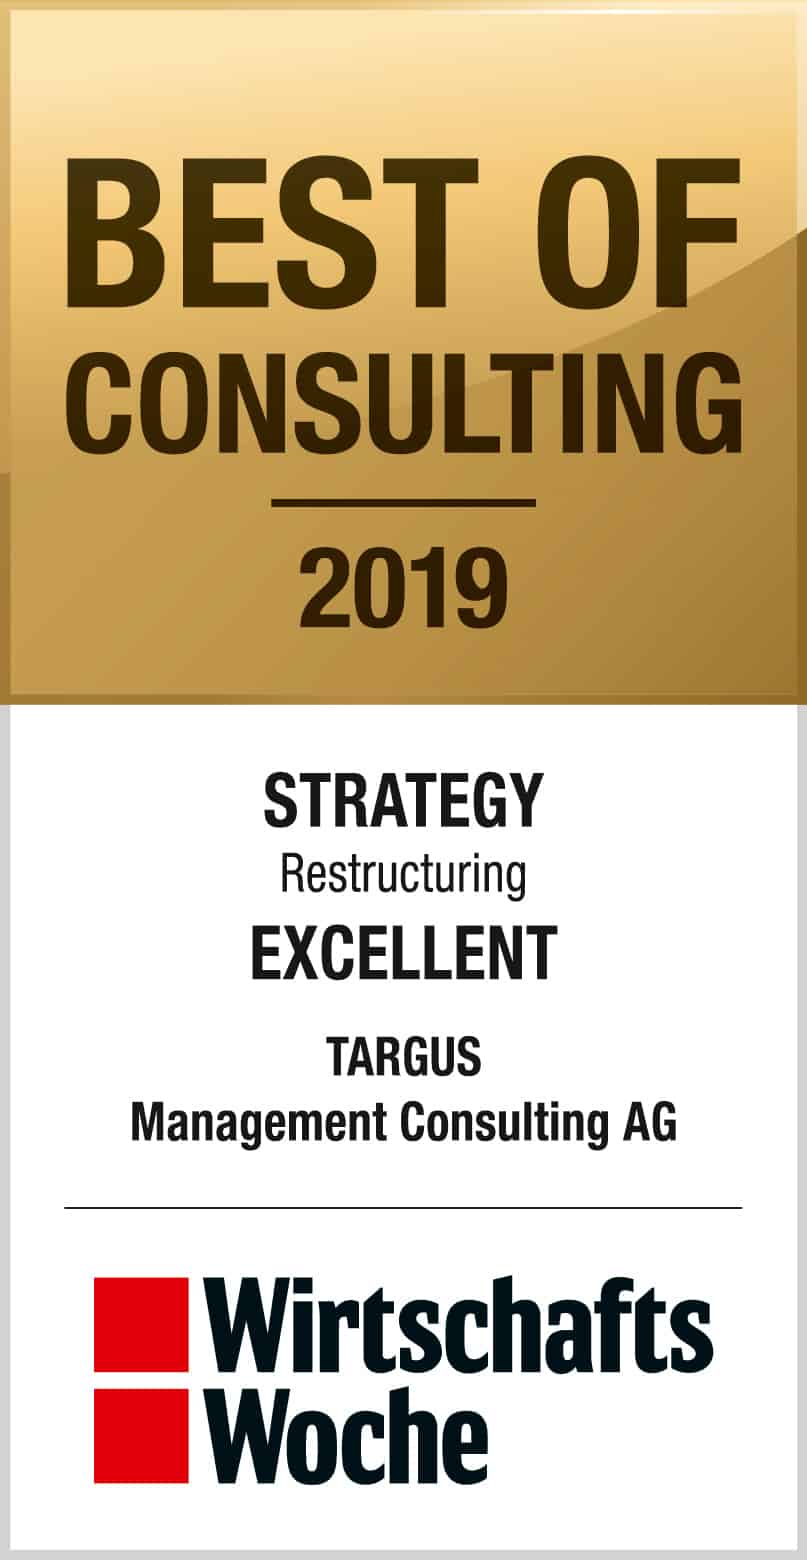 WiWo BOC 2019 Strategy TARGUS Management Consulting AG engl - Home